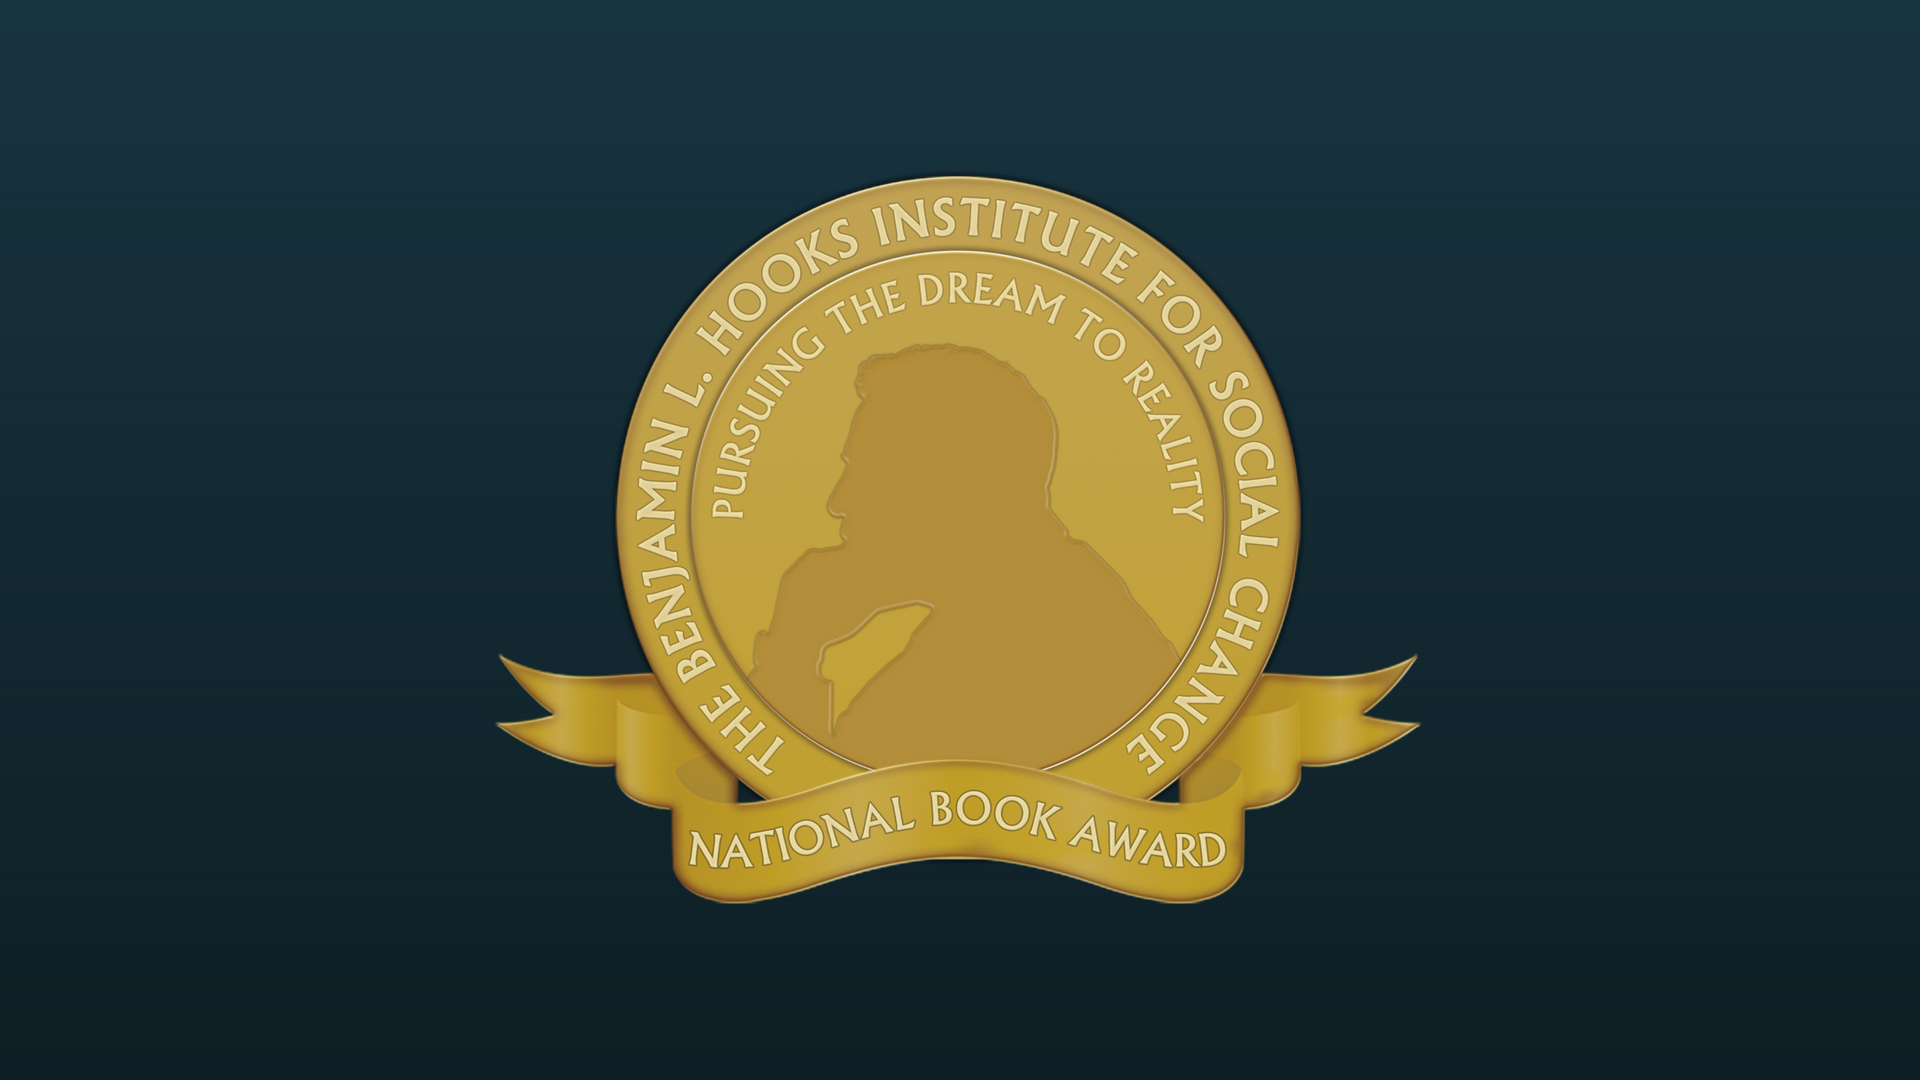 The Benjamin L. Hooks Institute for Social Change. Pursuing the Dream to Reality. National Book Award. Hooks National Book Award Seal.